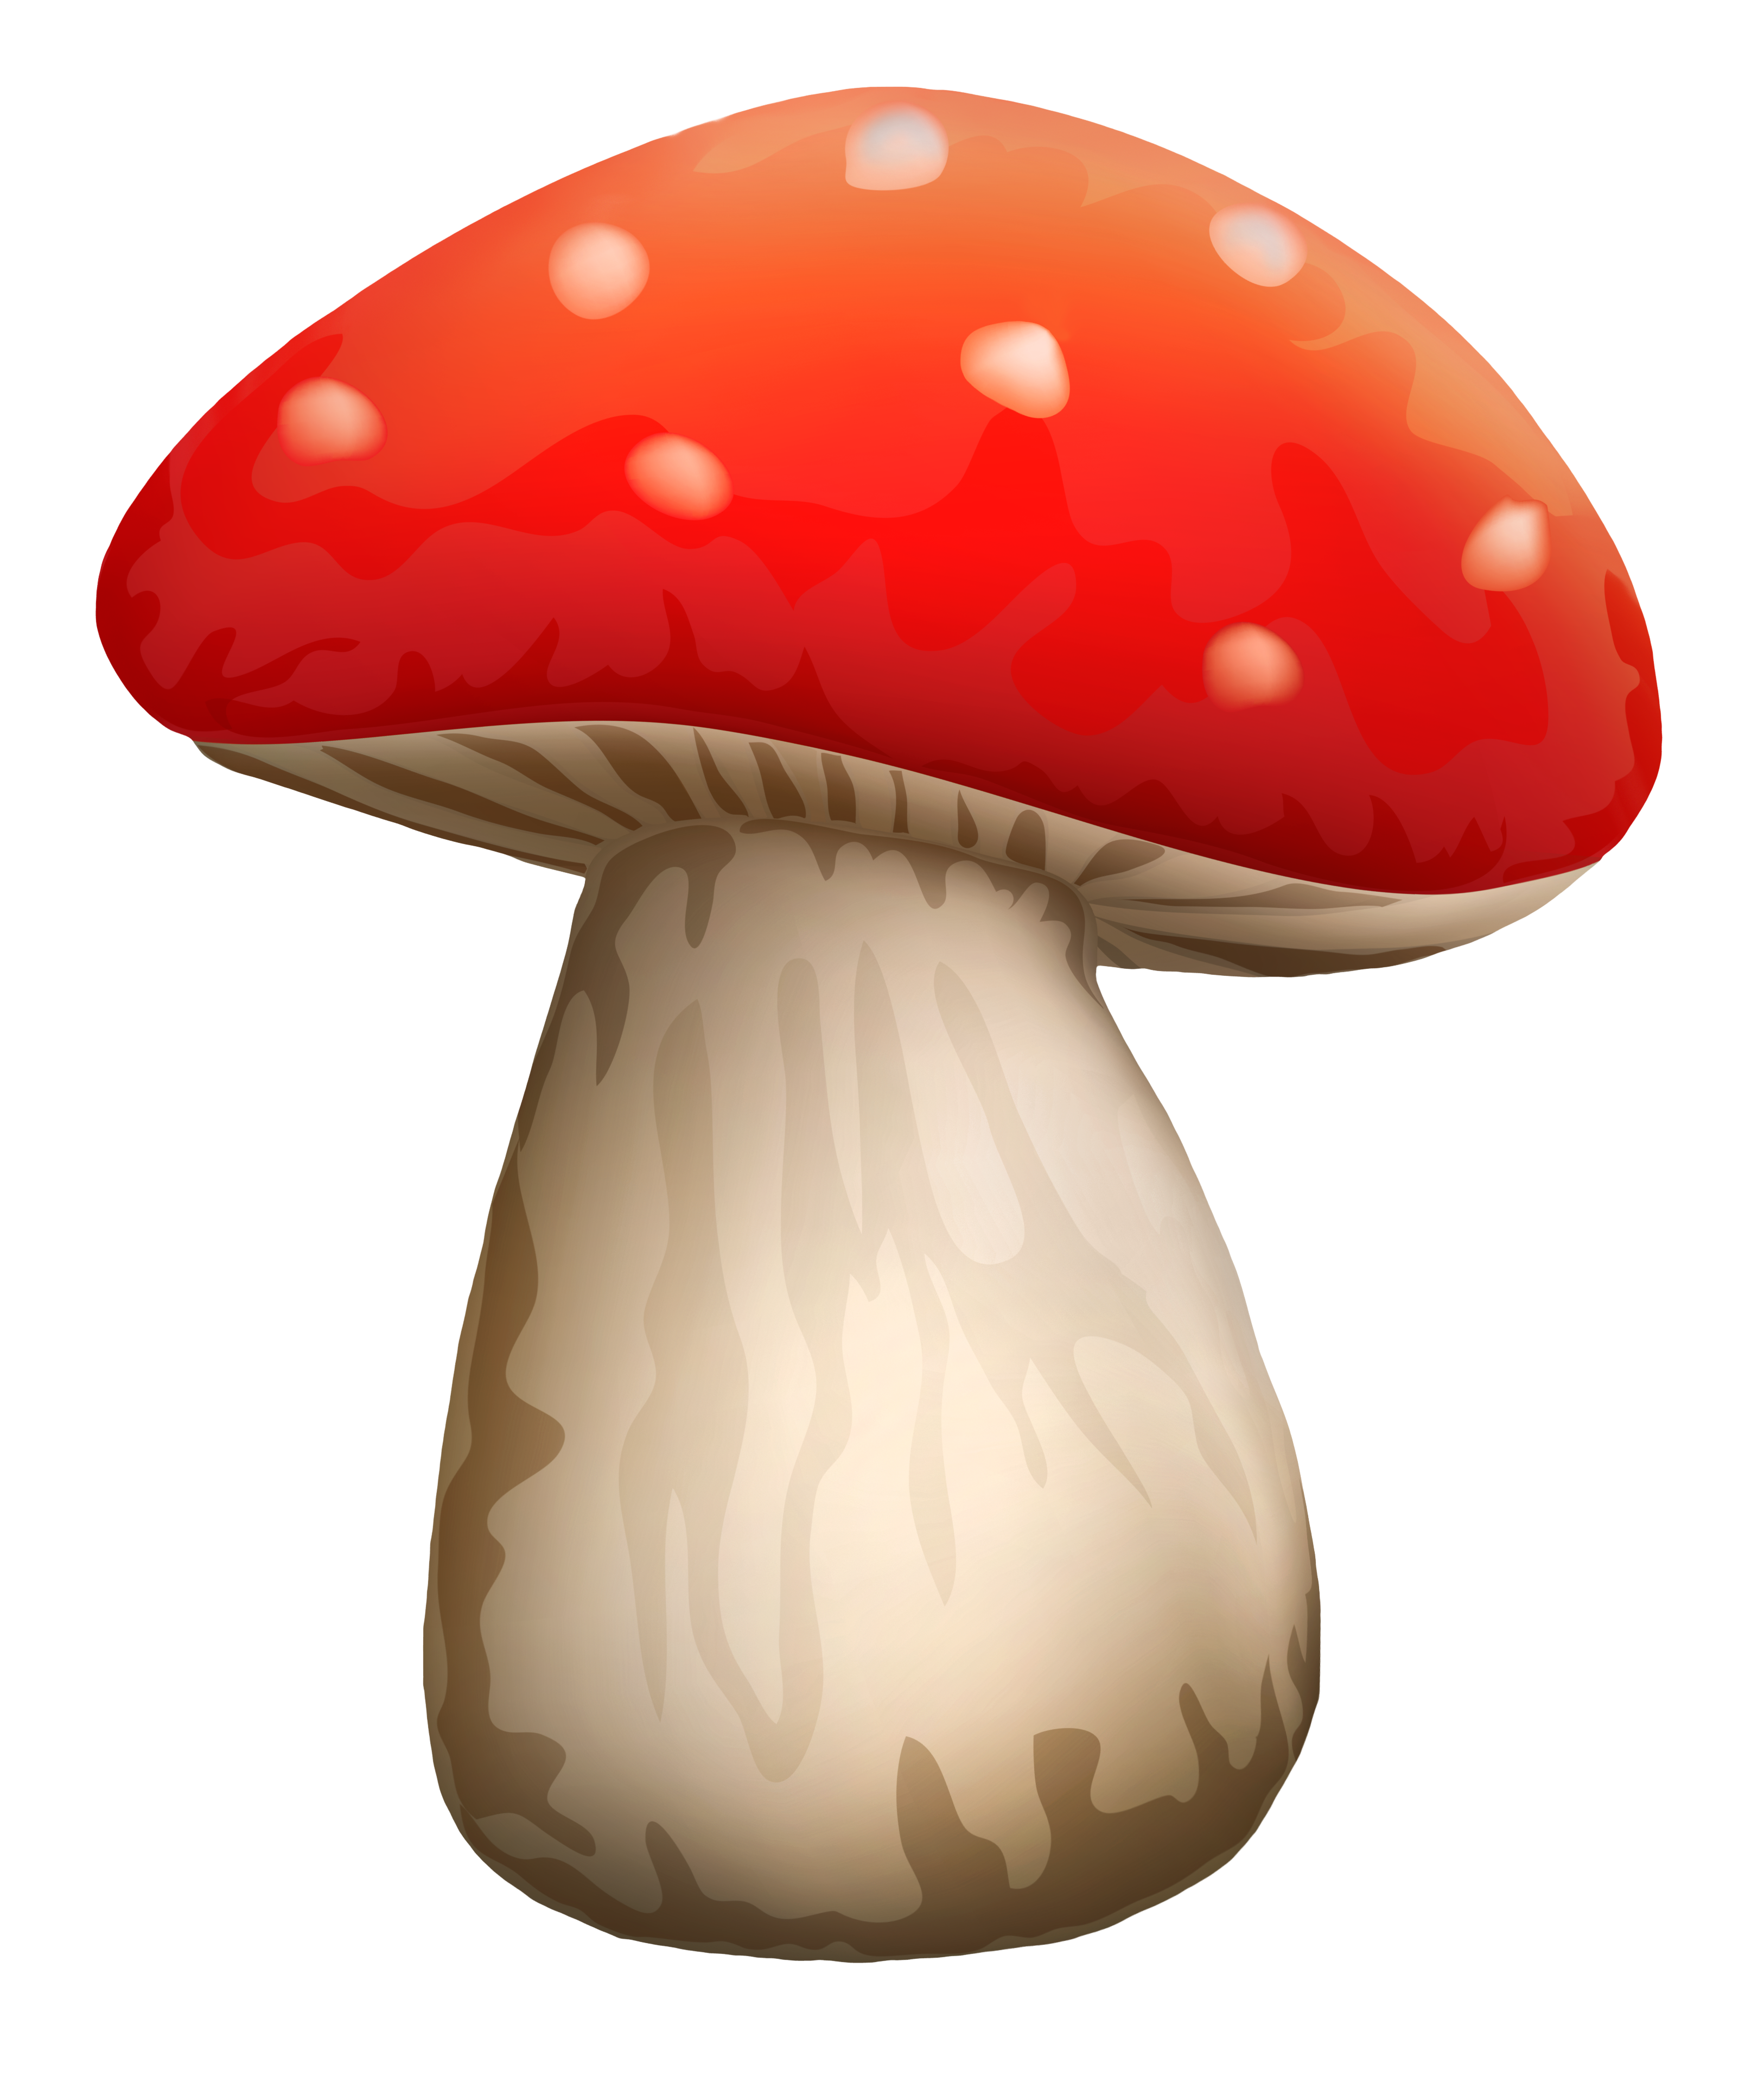 Trippy mushroom png. Poisonous red with white